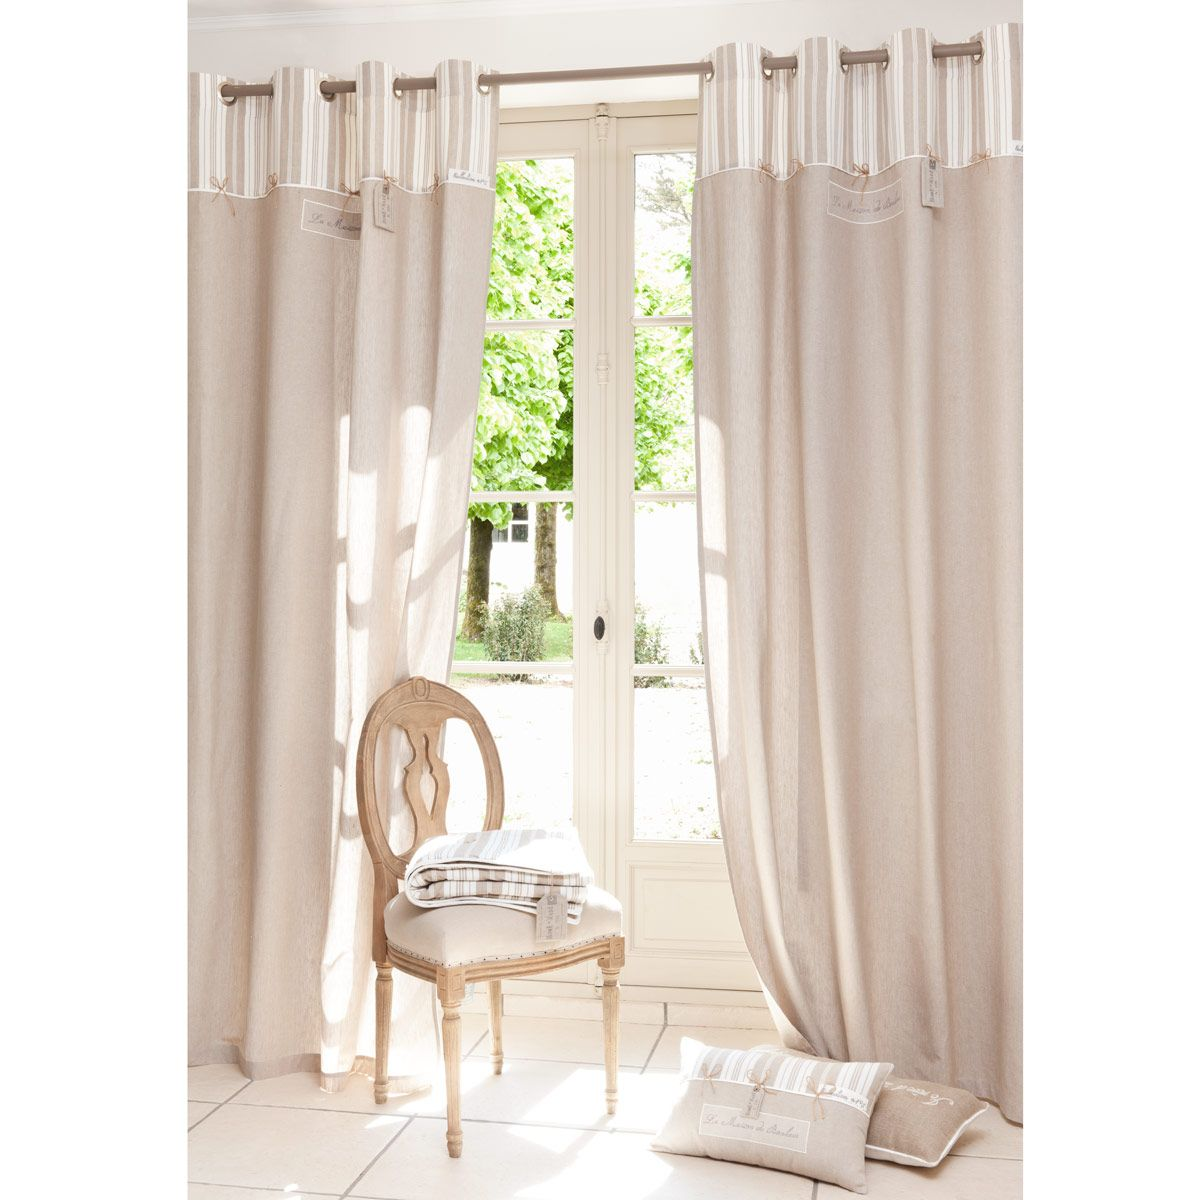 Tende A Vetro Maison Du Monde.Tessile Curtains Curtains Soft Furnishings E University Rooms